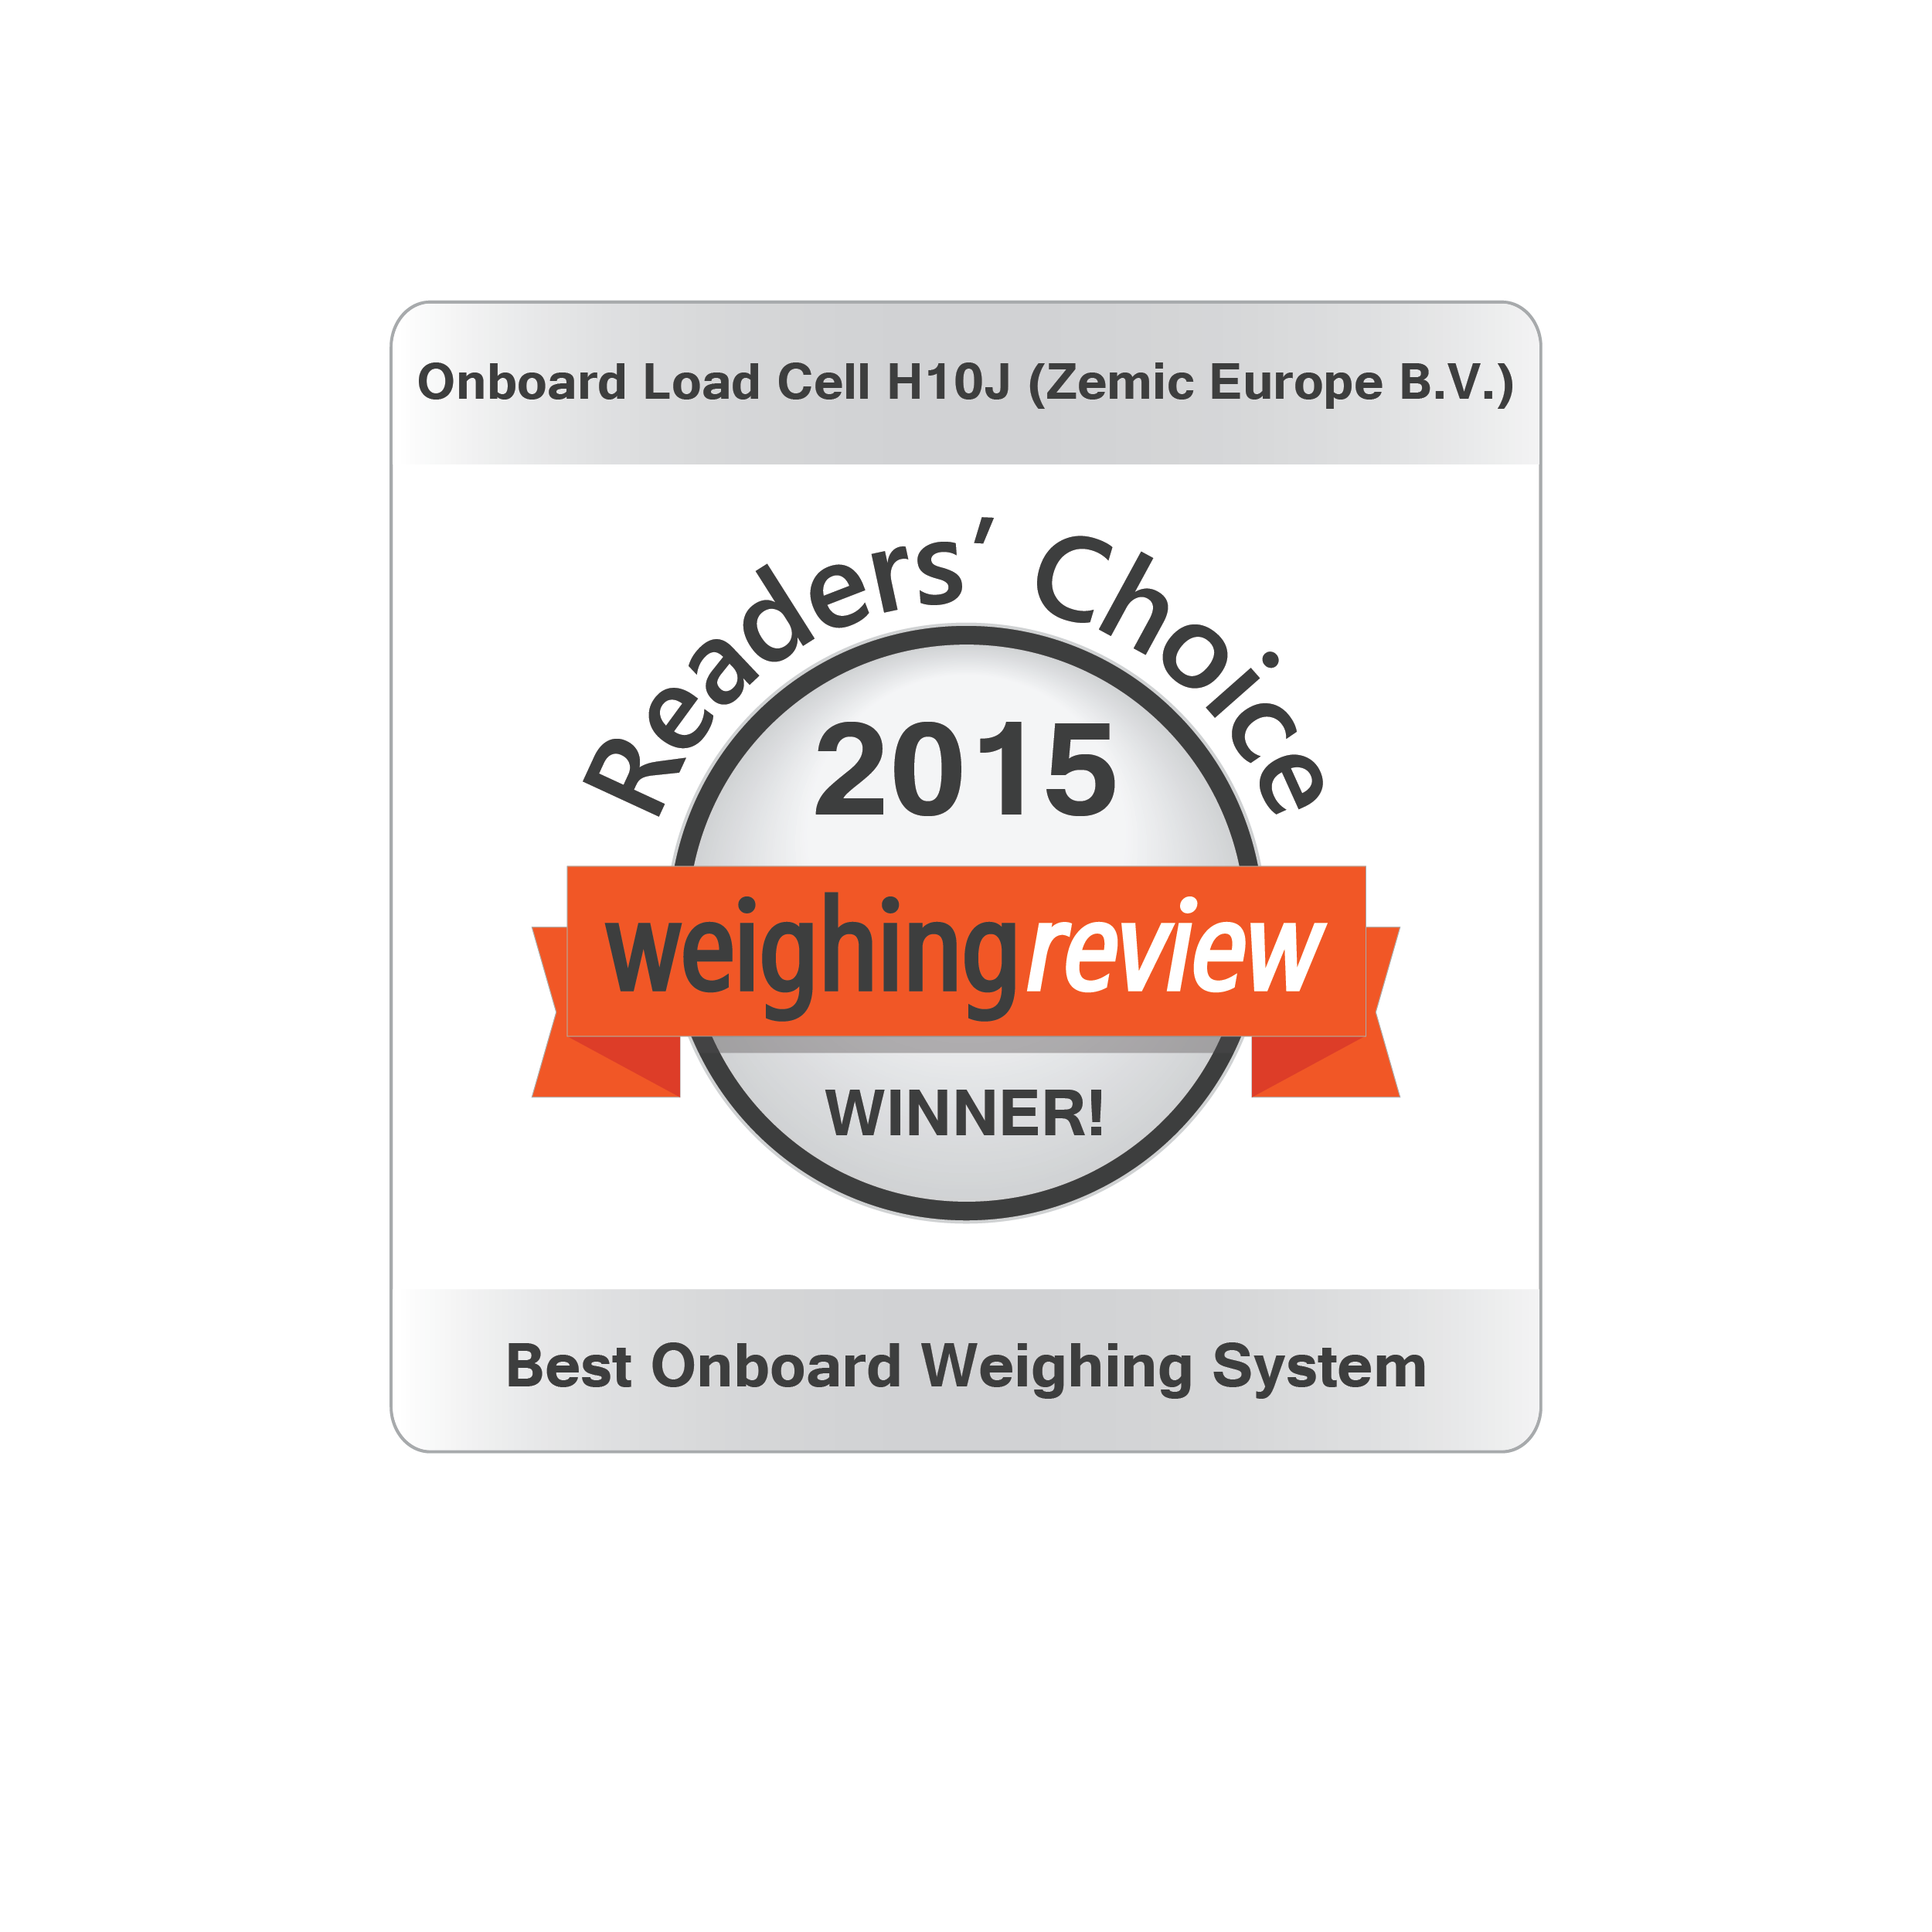 best onboard weighing solution 2015